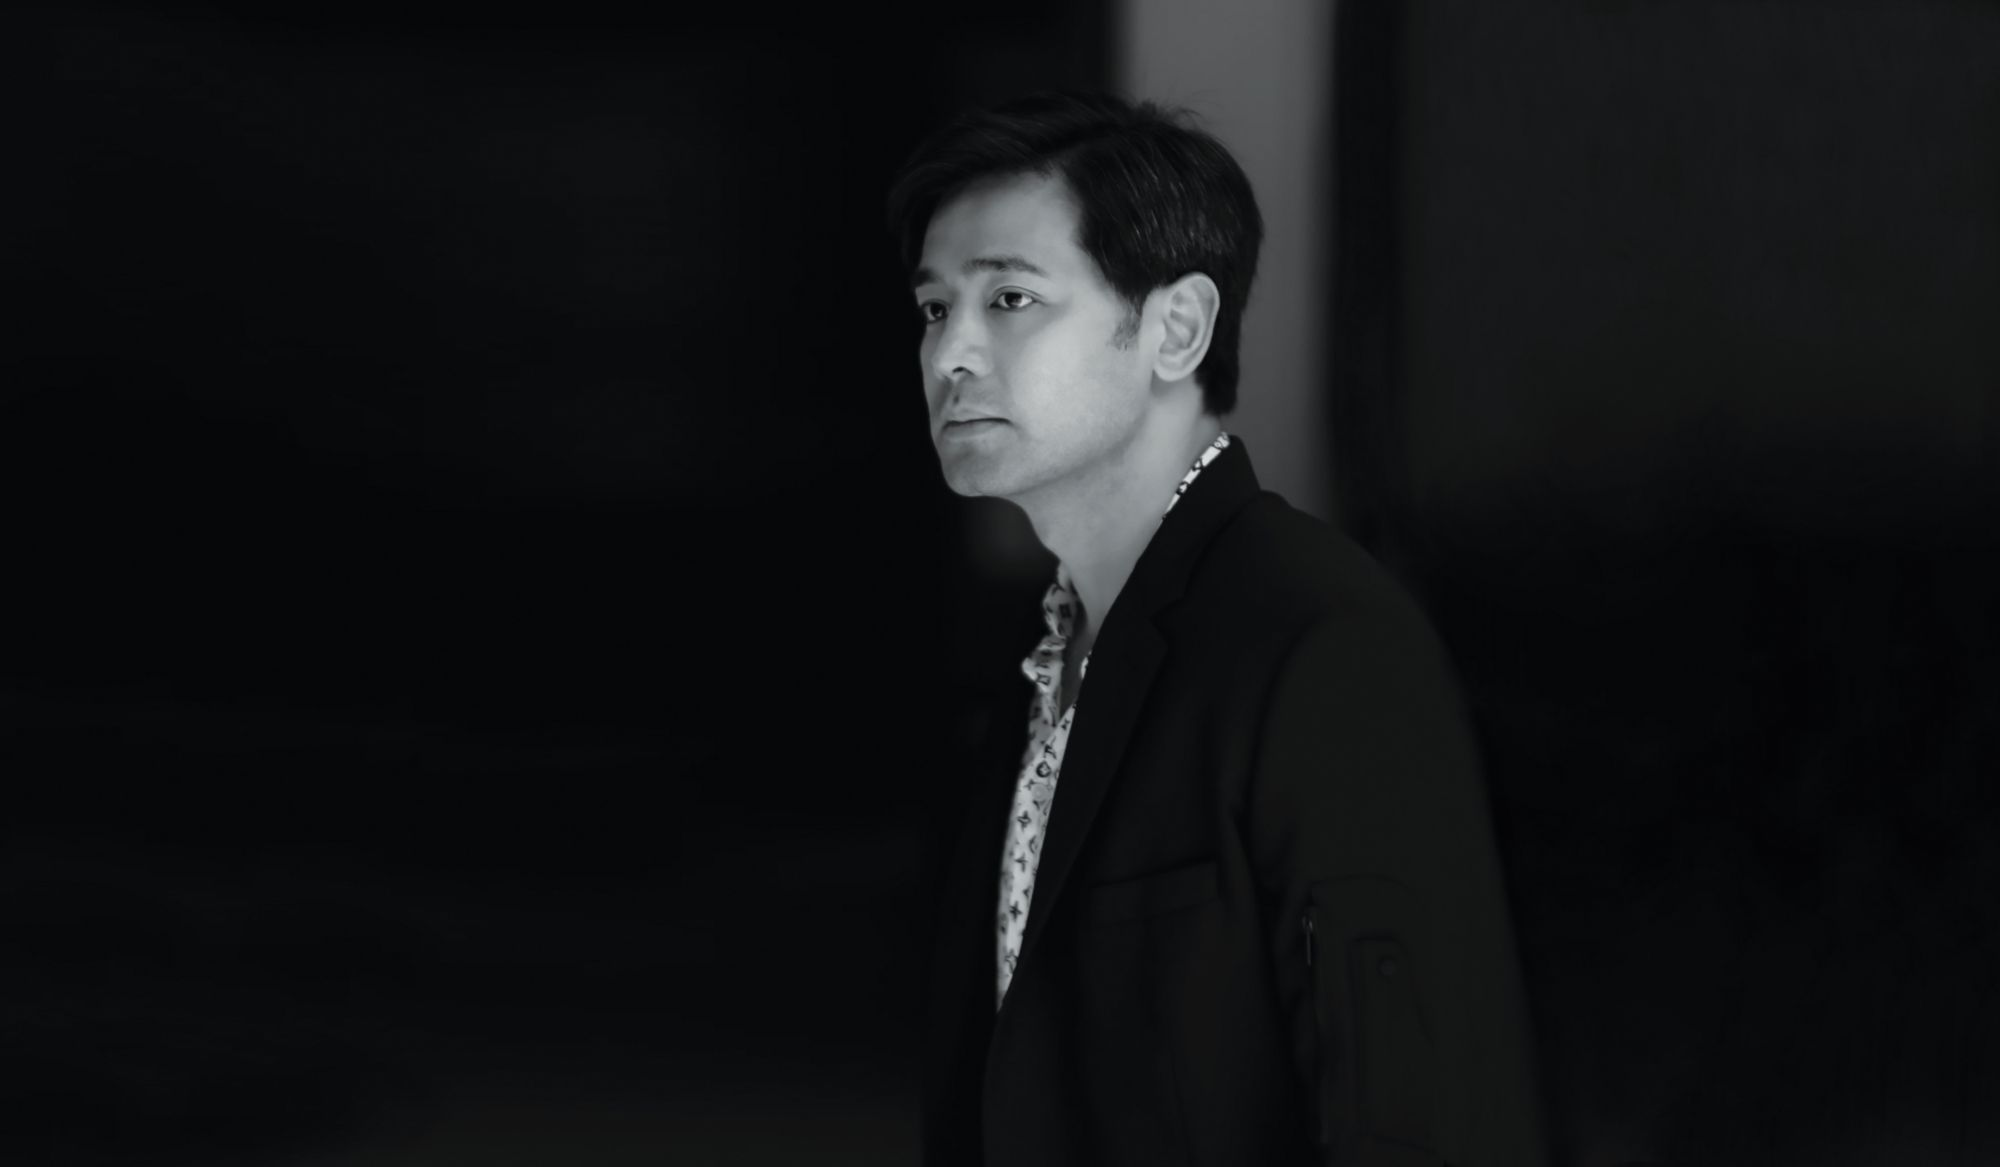 Dr. Hayden Kho Finally Speaks His Truth About His Tumultuous Past